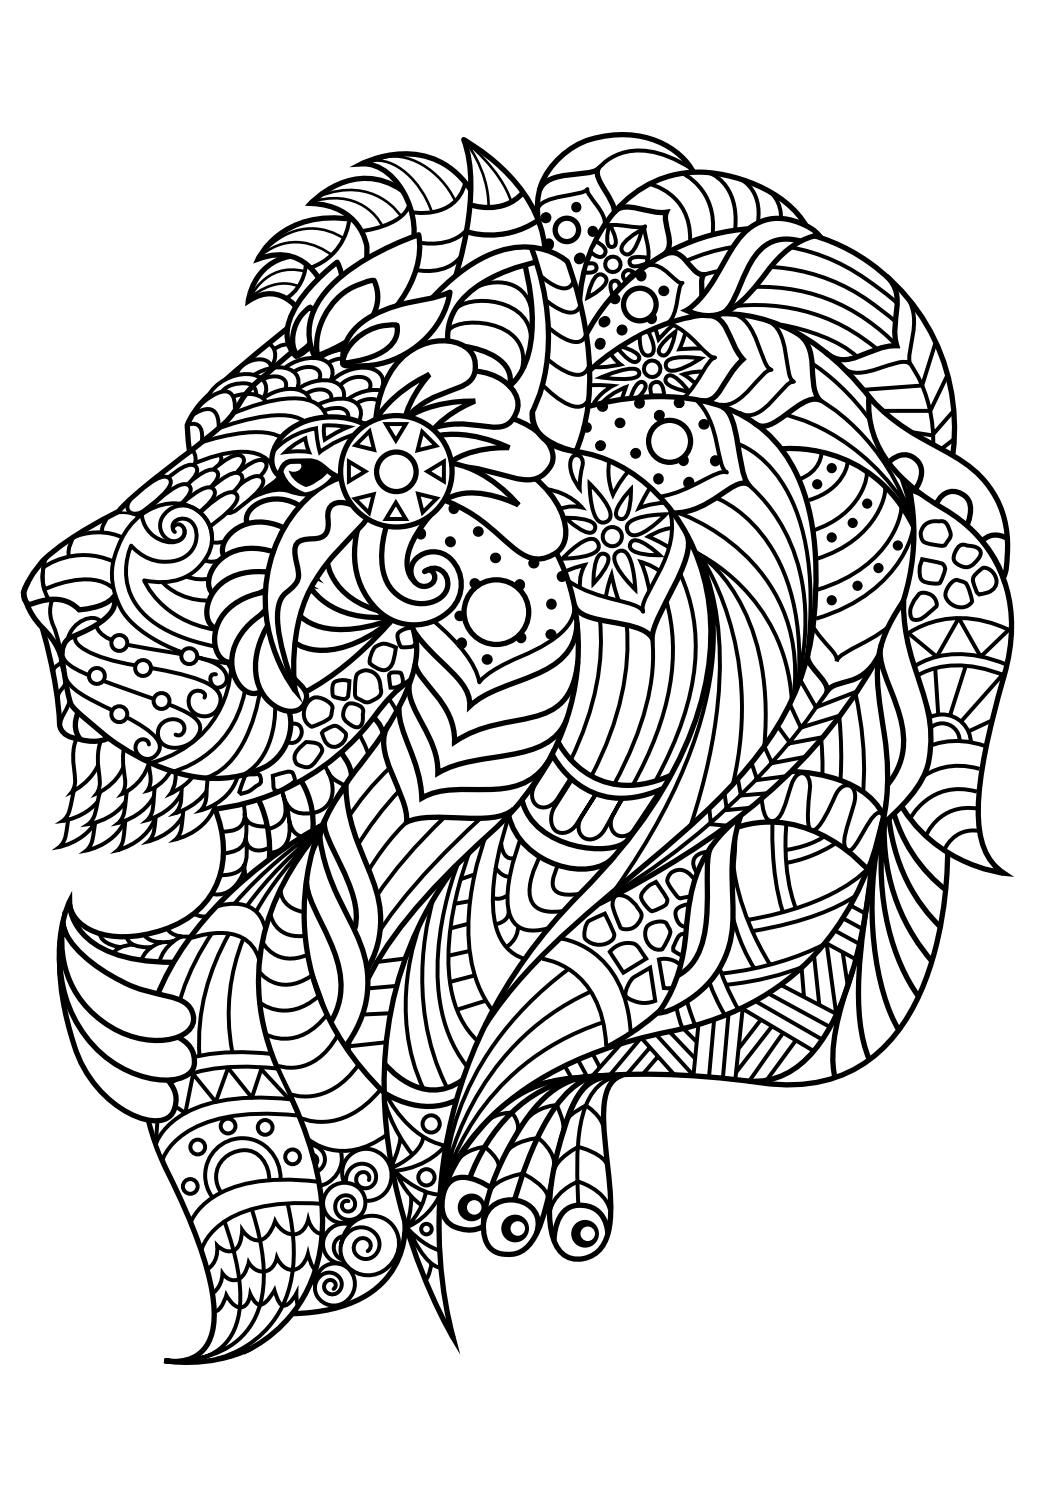 Animal coloring pages pdf | Lion coloring pages, Bird ...